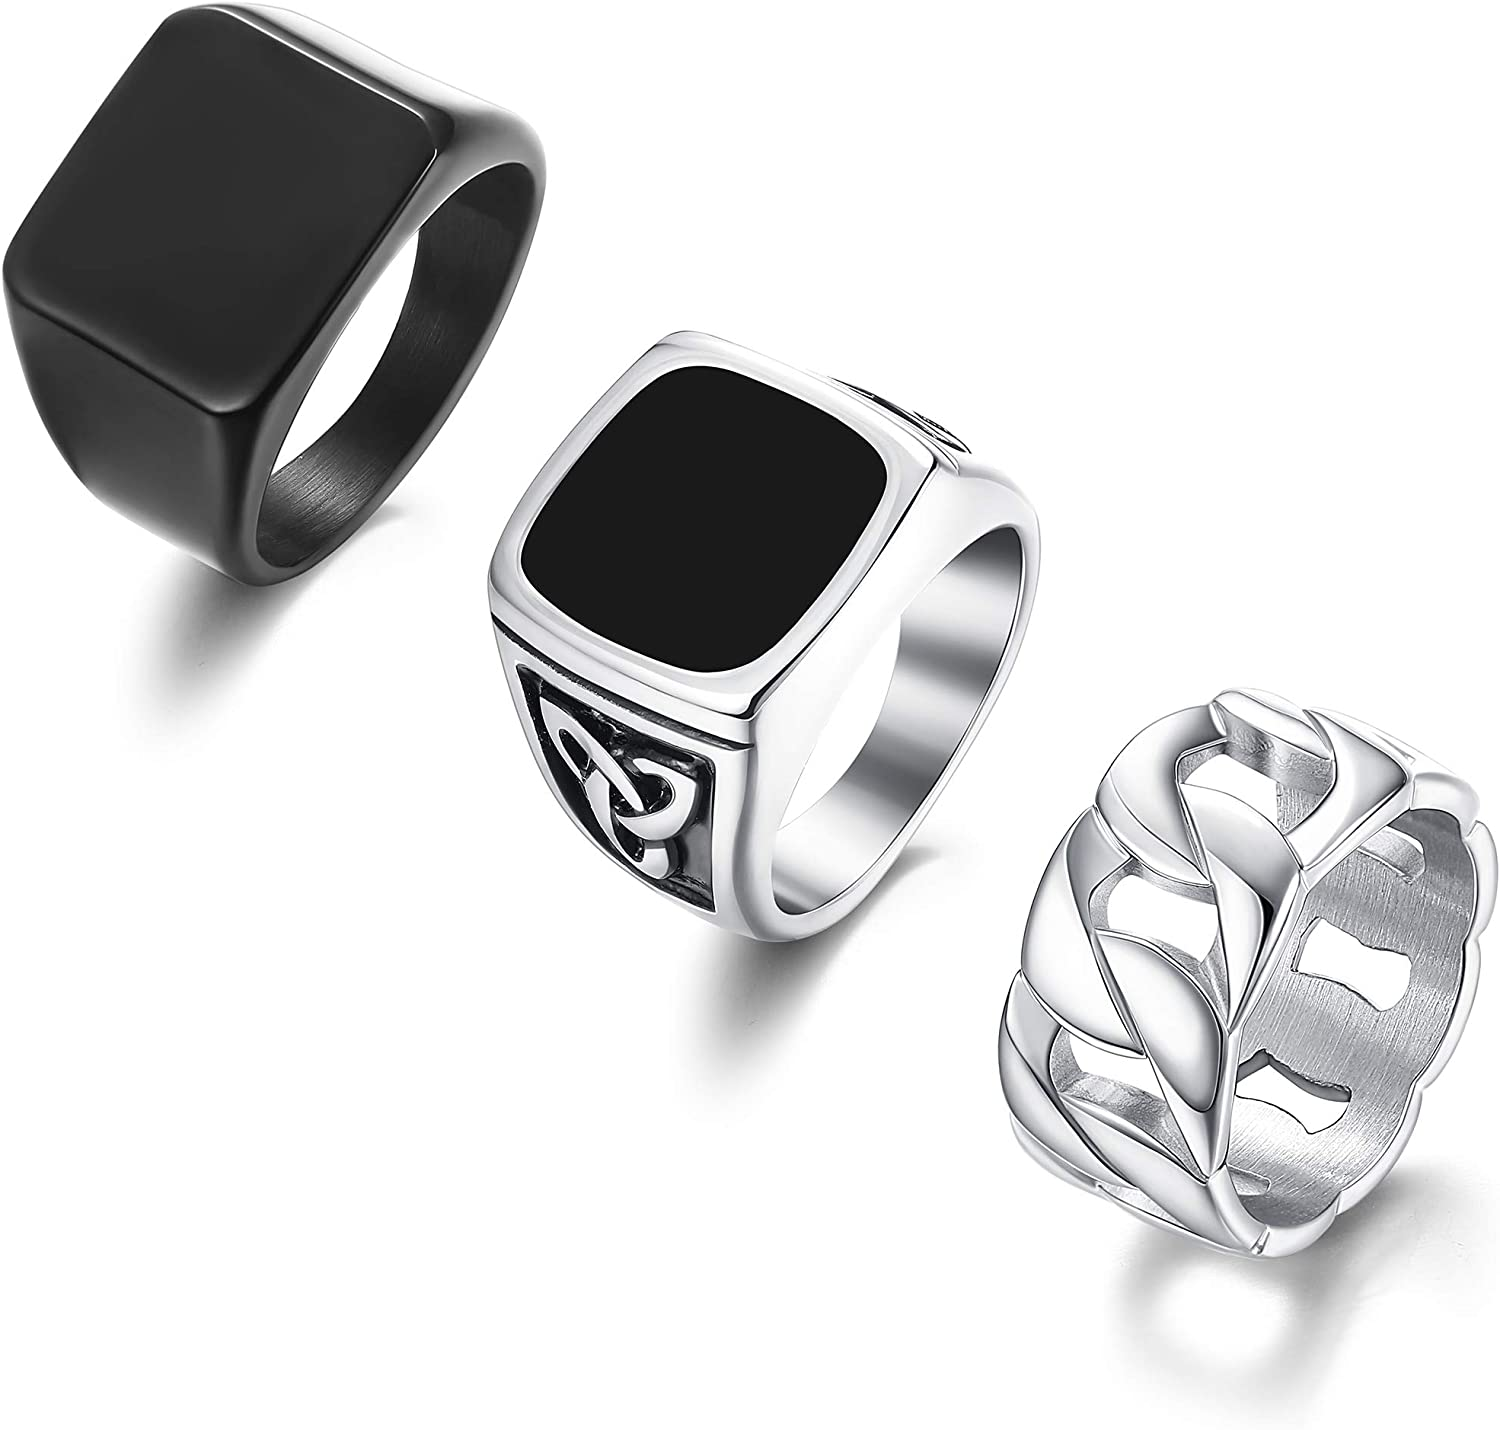 Max Popular standard 84% OFF LOYALLOOK 3 PCS Stainless Rings Pinky Signet Steel